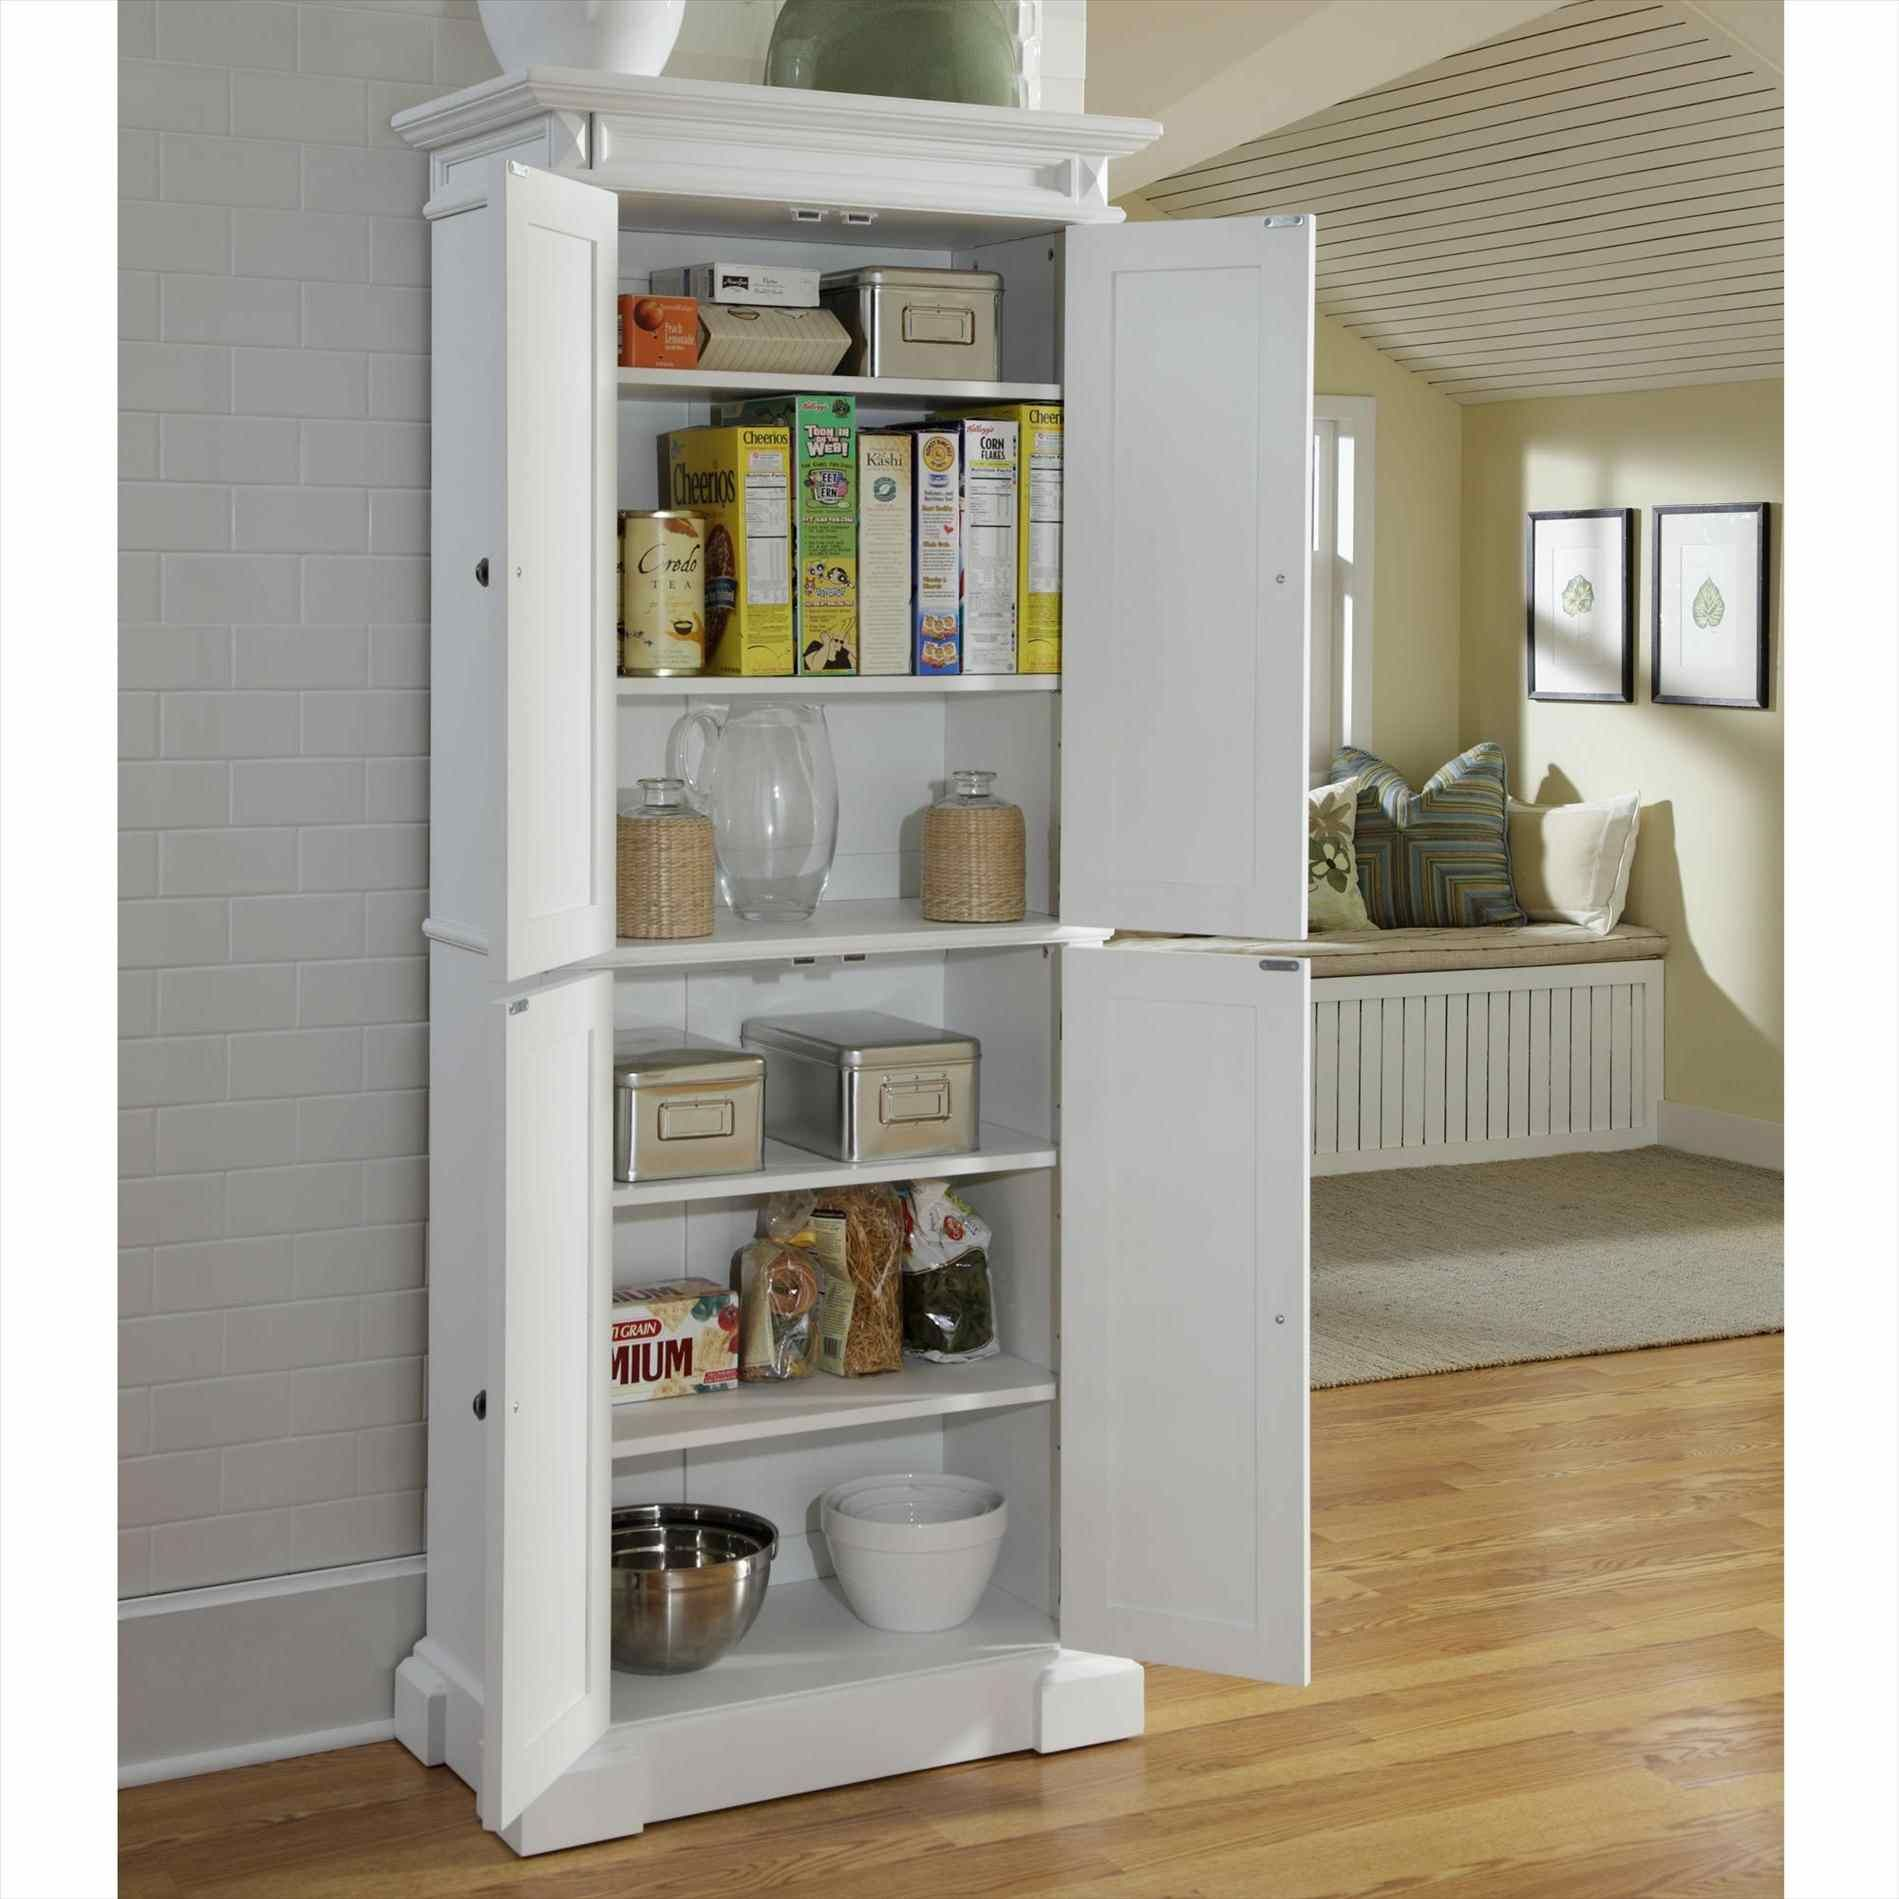 30 Free Standing Kitchen Cabinets Trend 2018 | Pantry ...